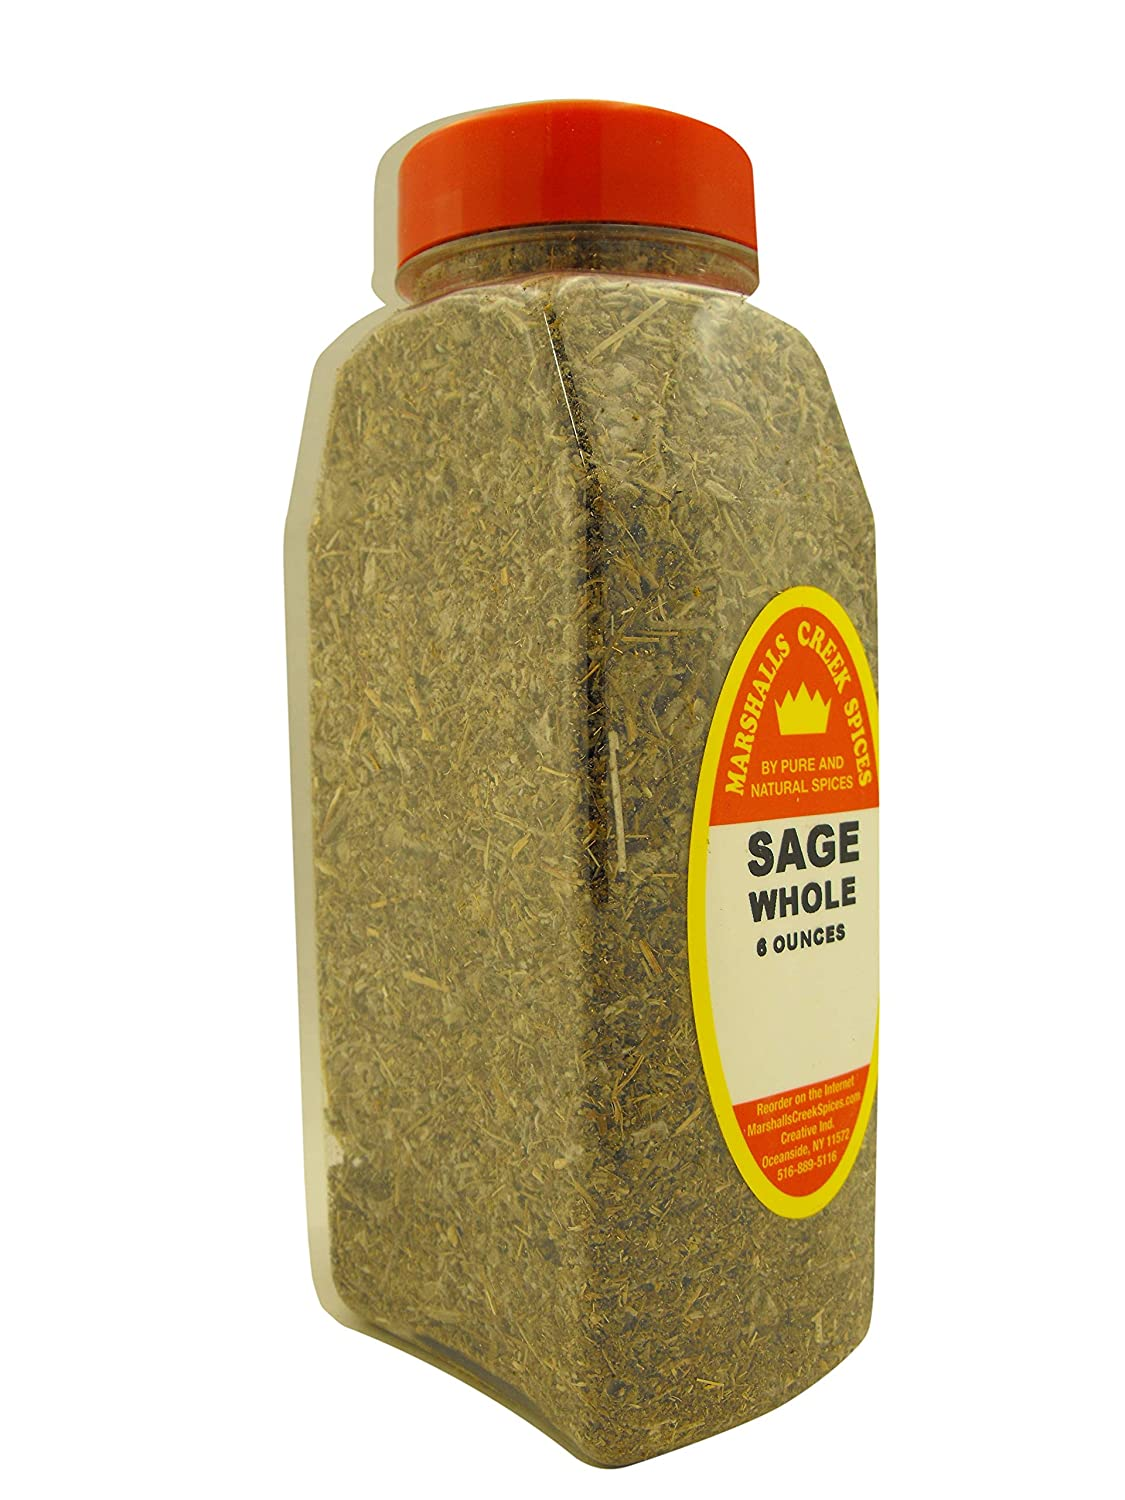 XL Size Marshalls Creek Limited time sale Spices … 6 New arrival oz Whole Sage